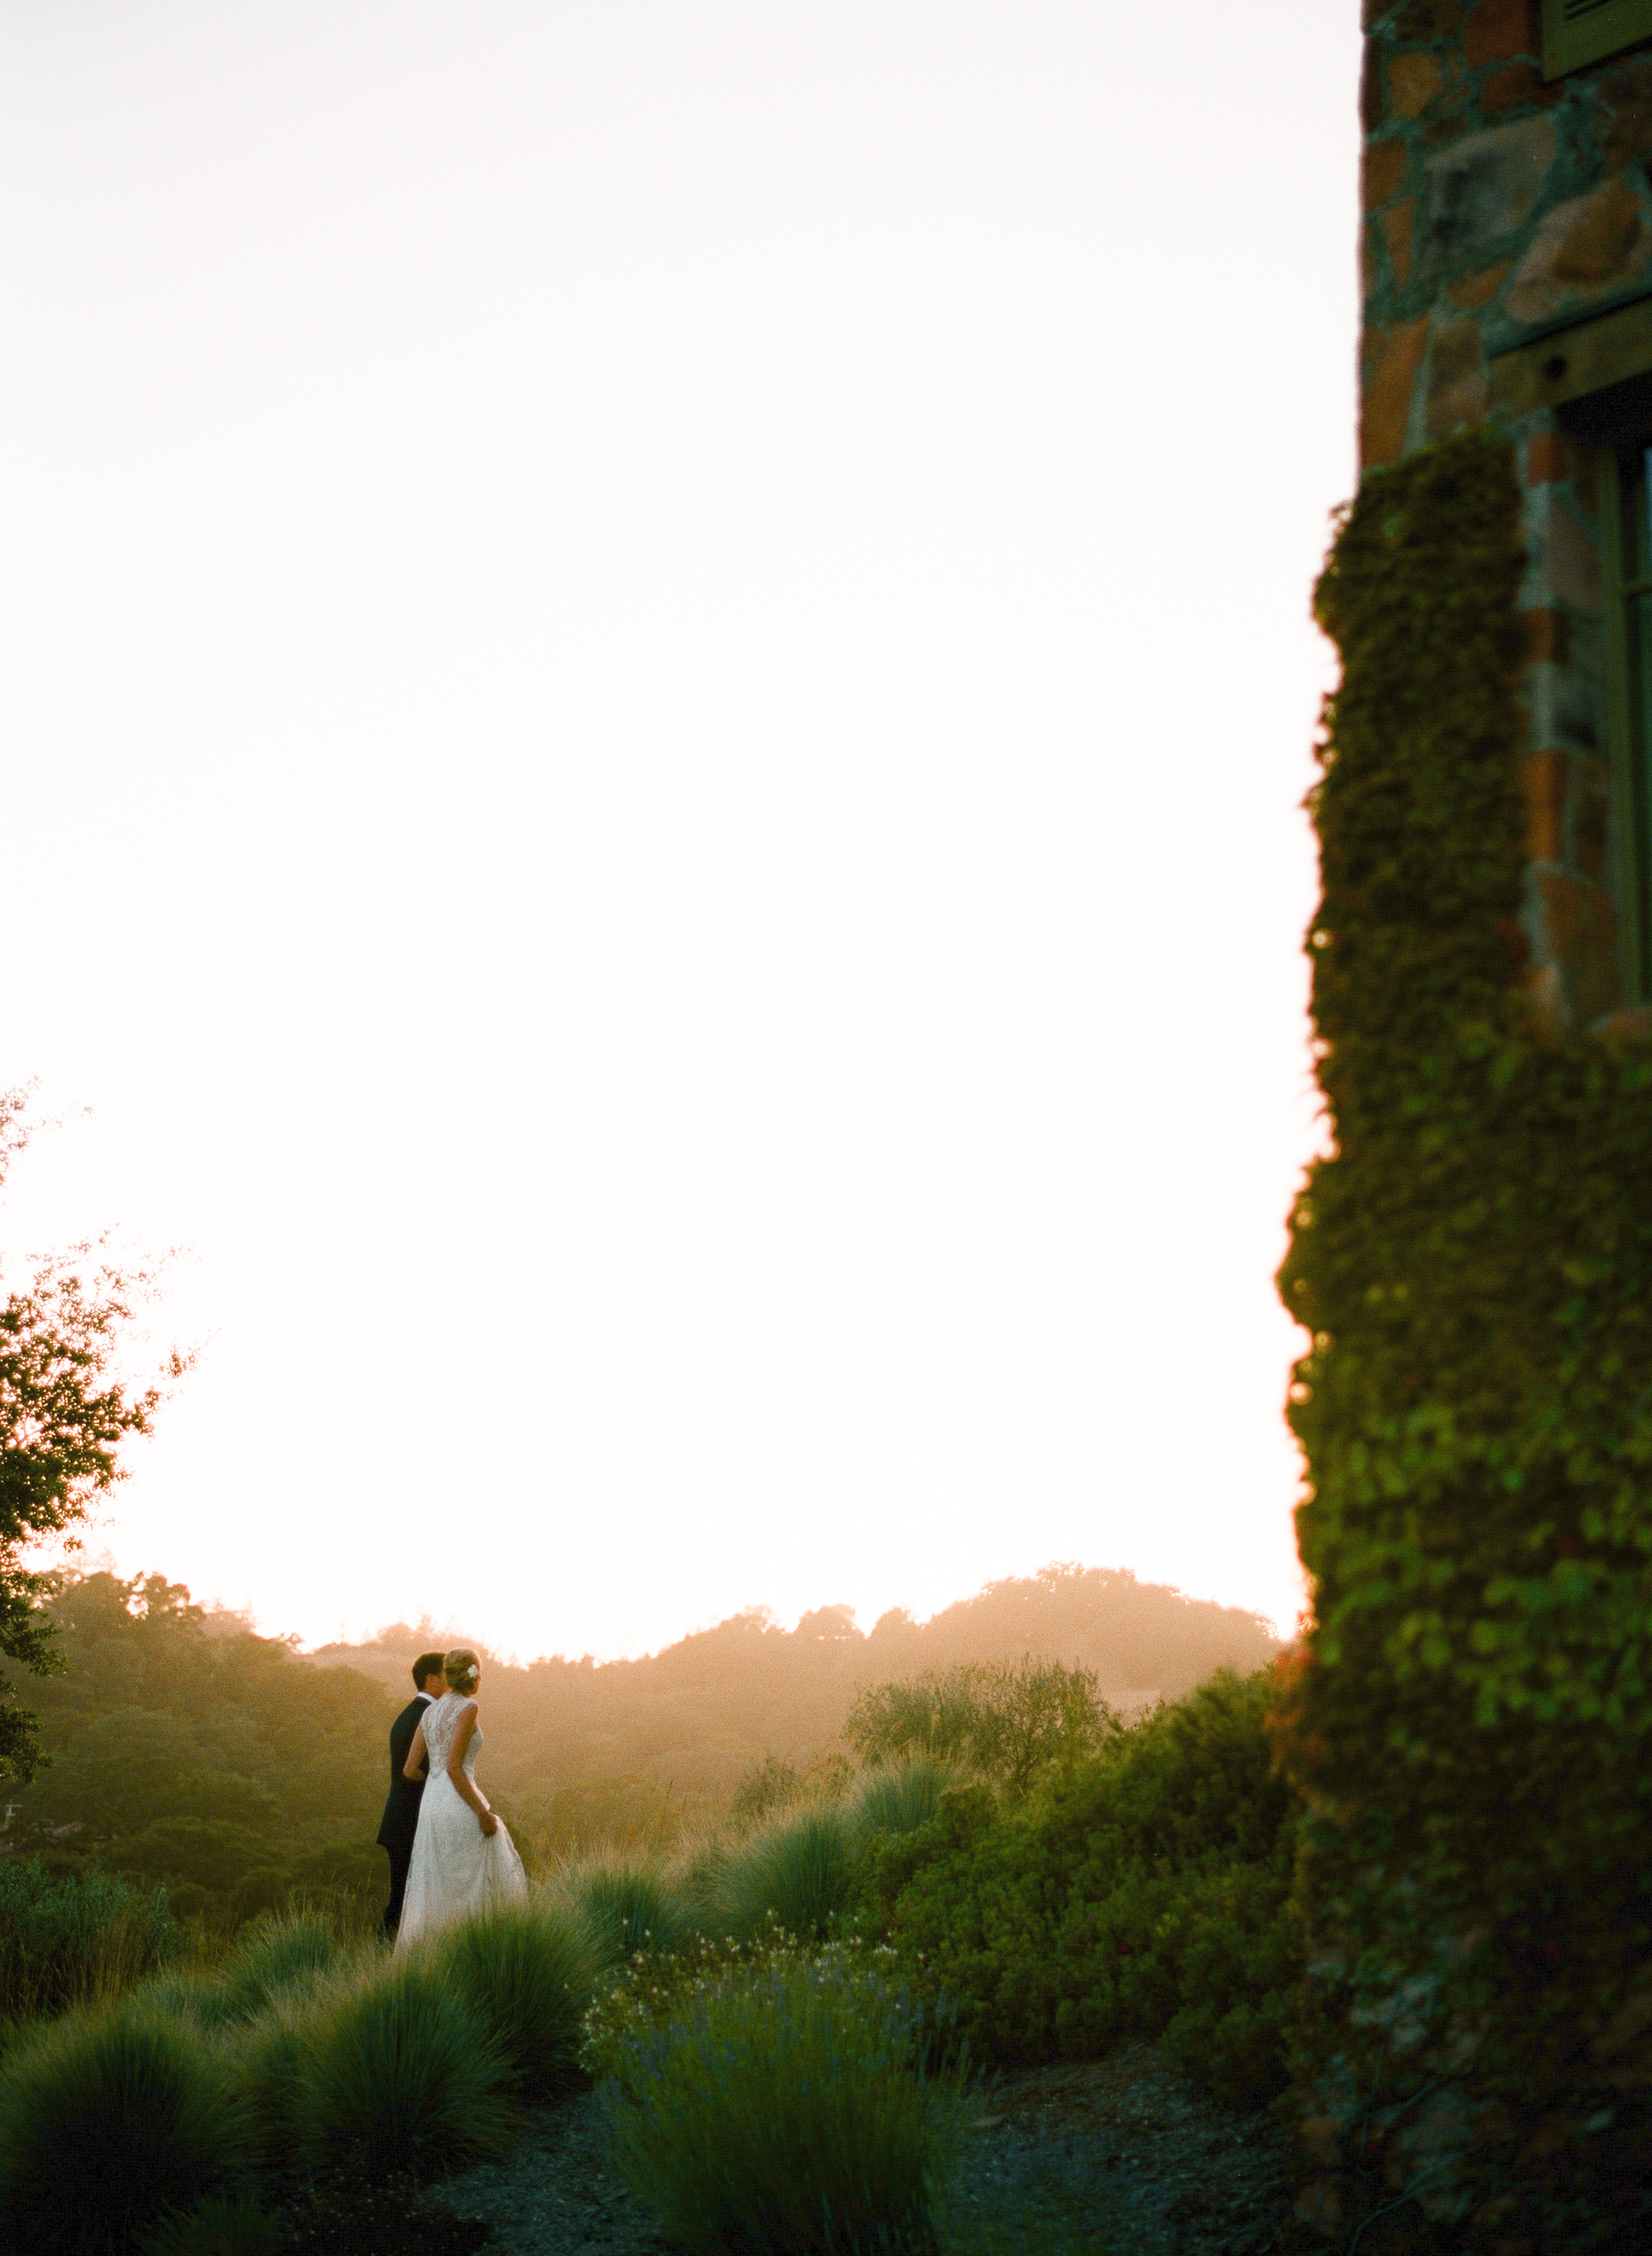 The couple, bathed in the light of sunset, walk off together, viewed from the edge of an old brick wall during a couple shoot with Sylvie Gil